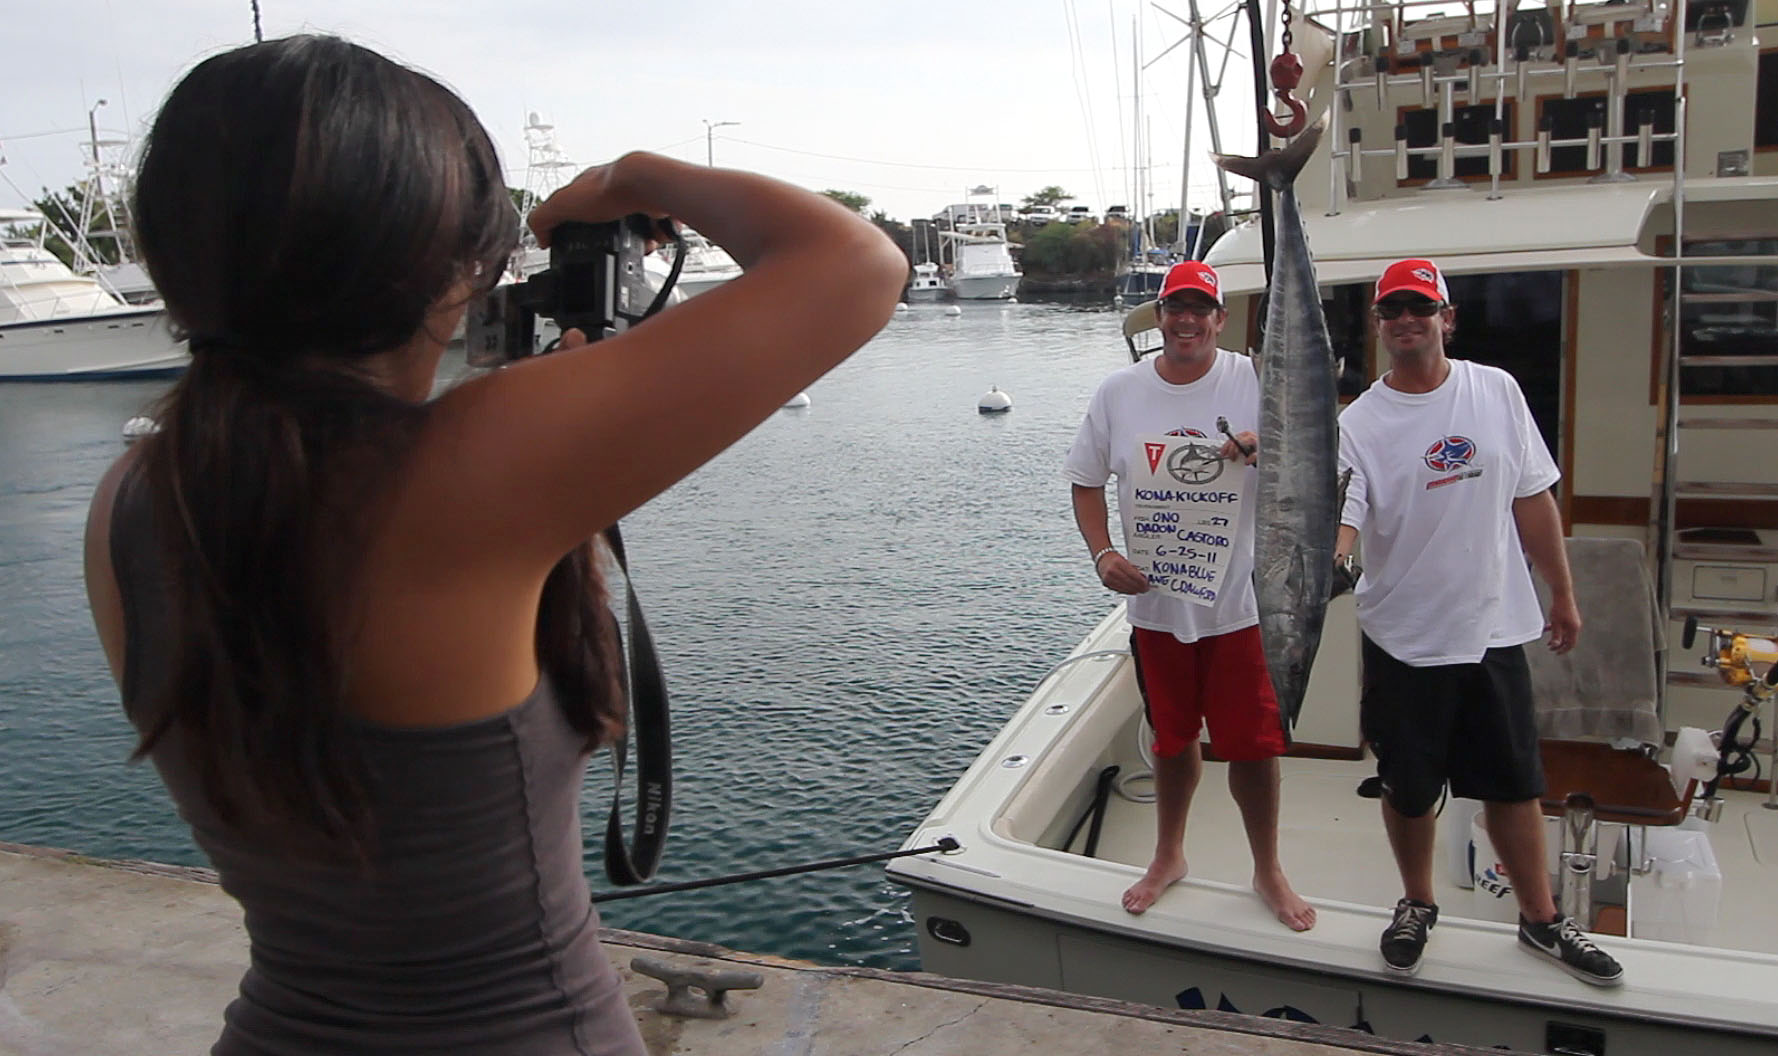 Angler Daron Castoro pulled in a 27 pound Ono on boat 'Kona Blue' skippered by Captain Dave Crawford Saturday (June 25).